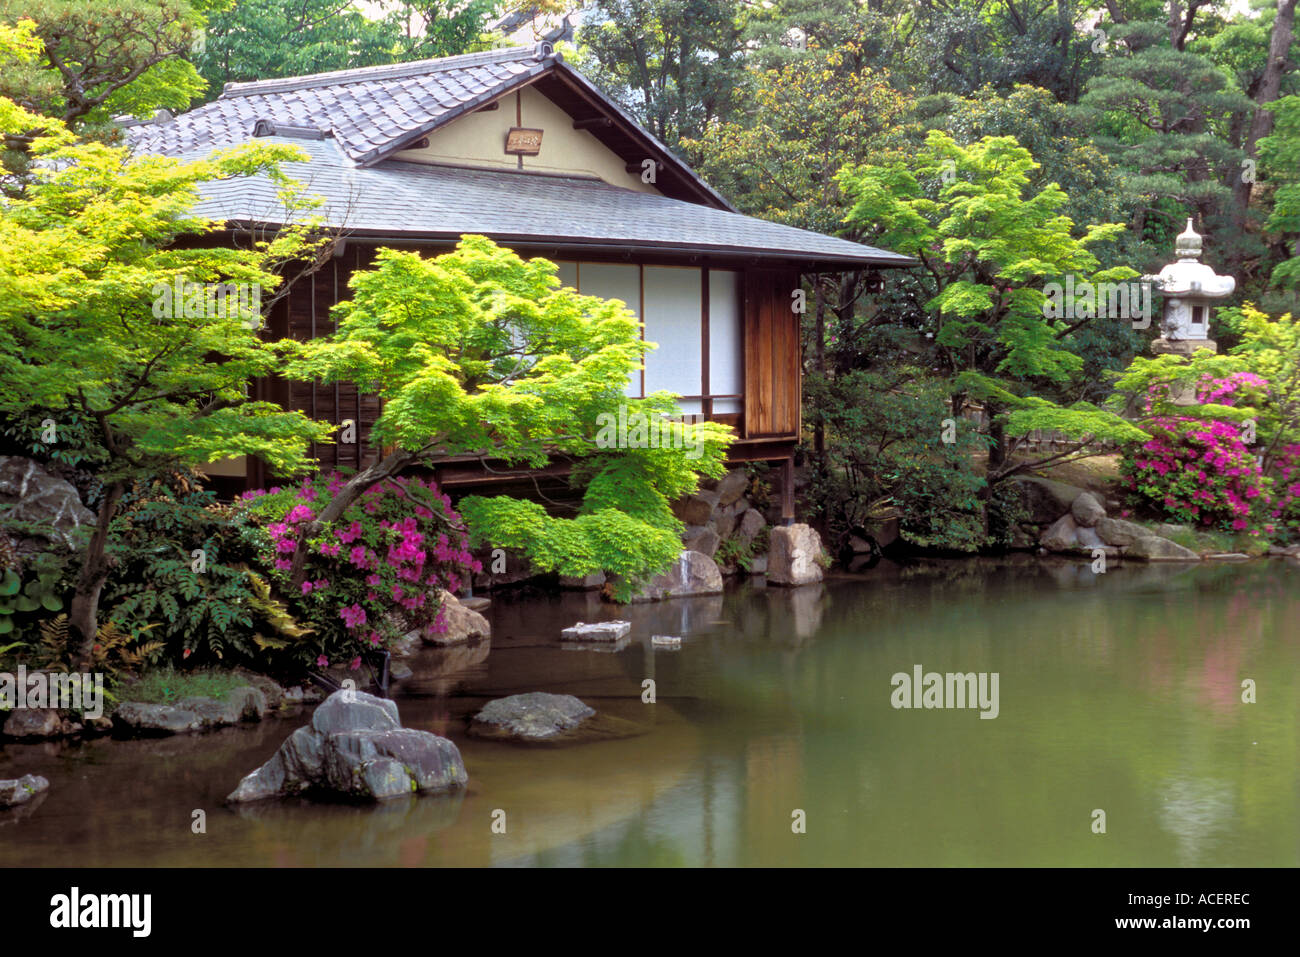 Tea house beside koi pond in spring setting at sorakuen for Koi pond in house